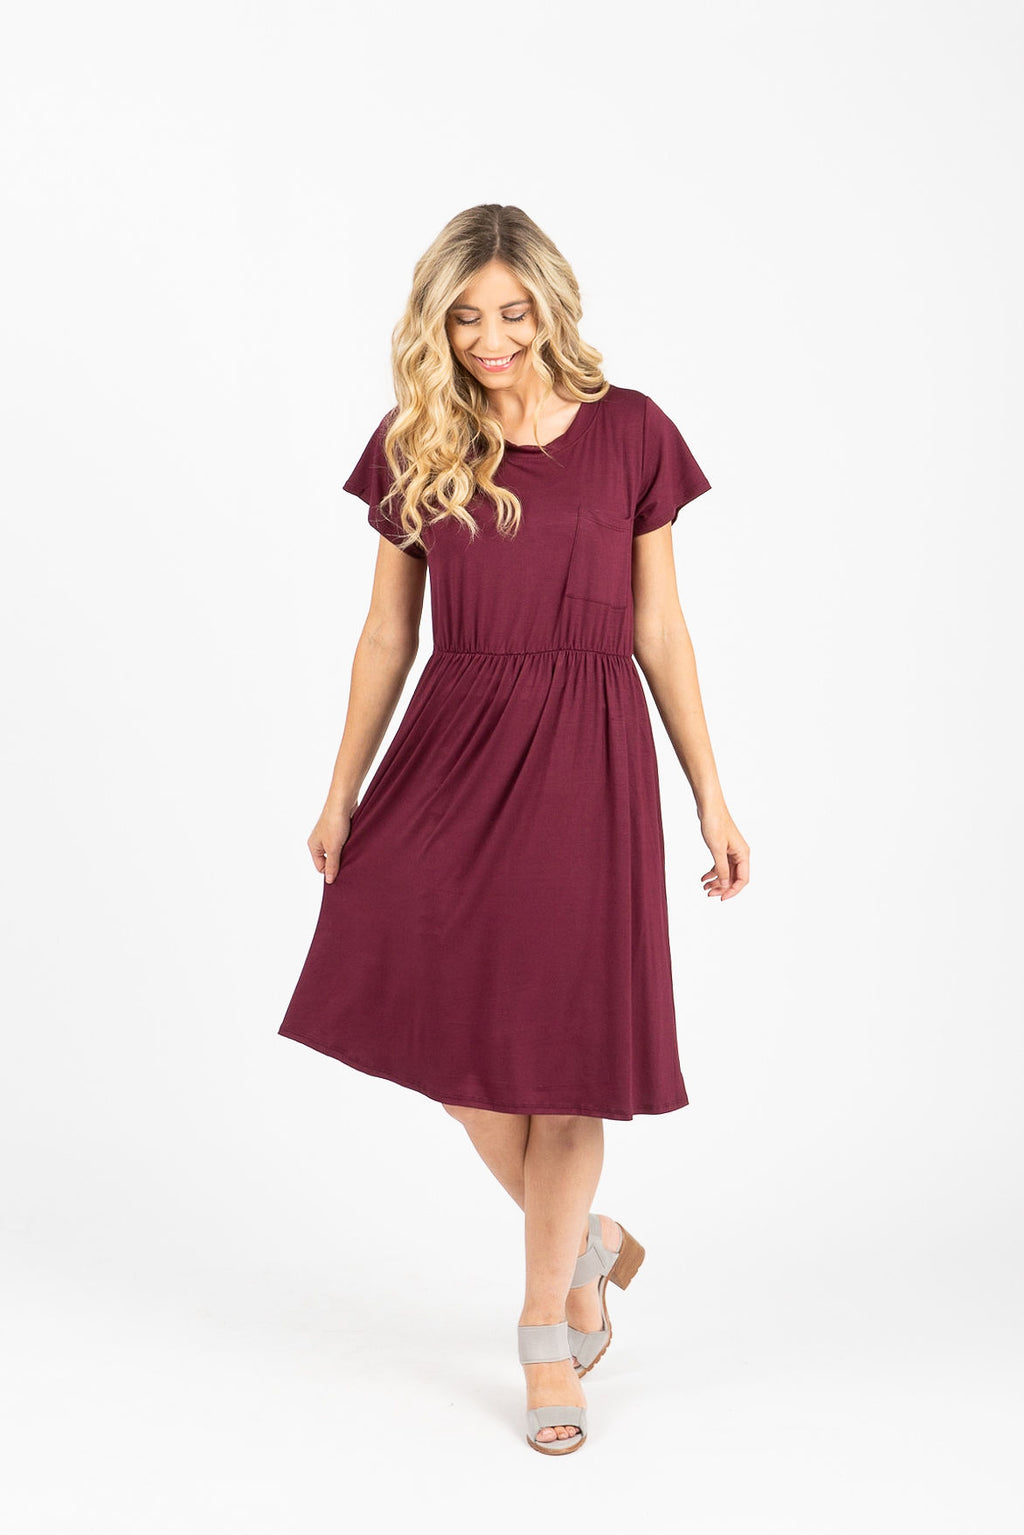 The Madeleine Casual Empire Dress in Plum- studio shoot; front view